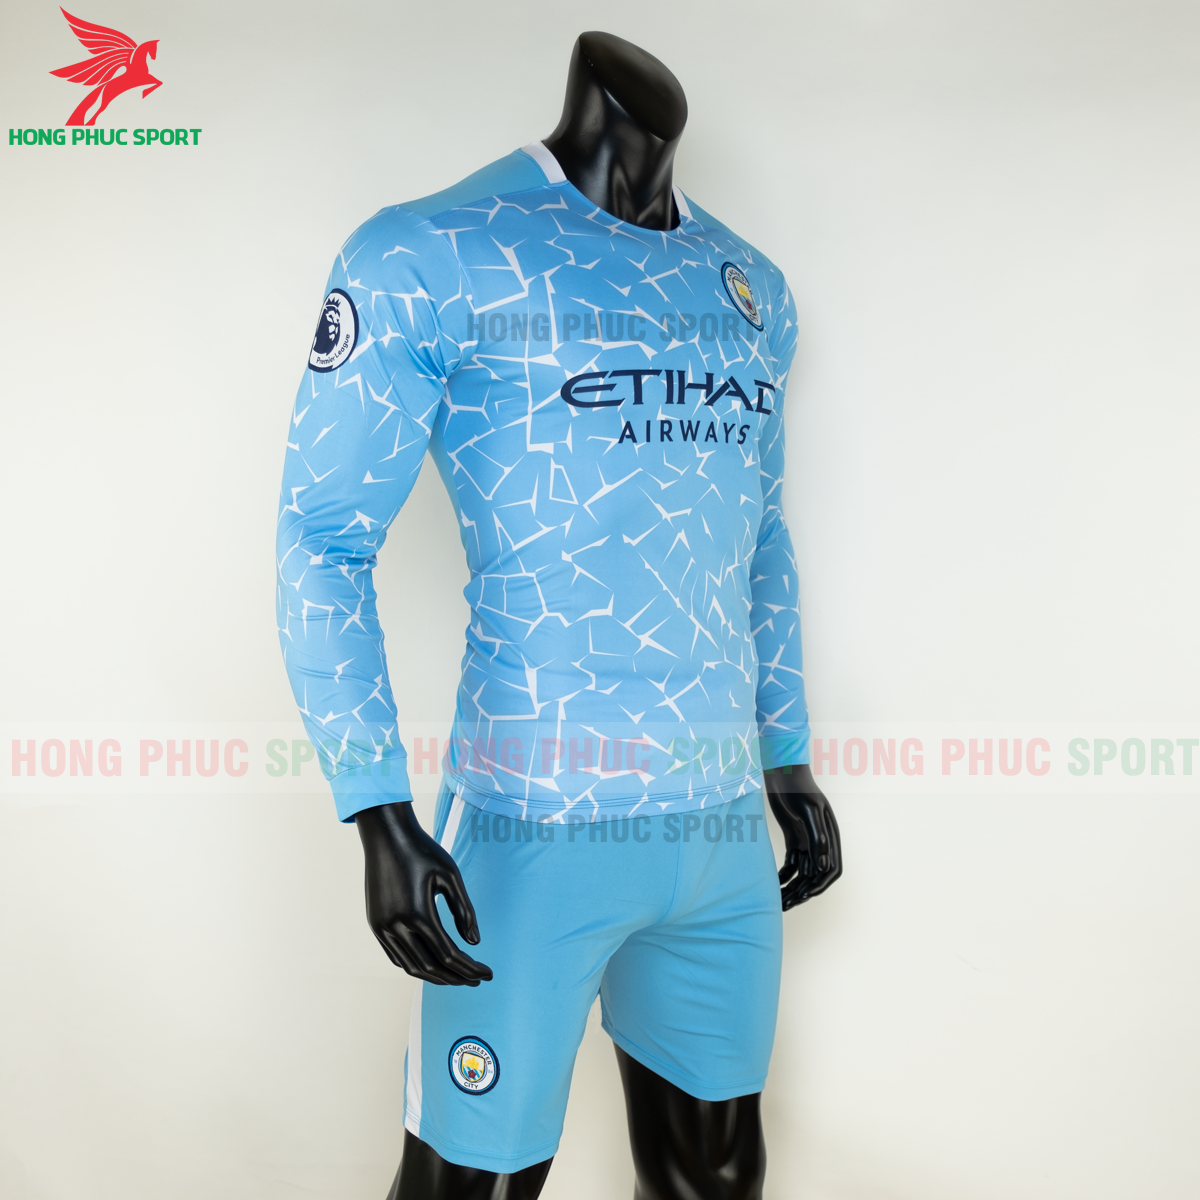 https://cdn.hongphucsport.com/unsafe/s4.shopbay.vn/files/285/ao-dai-tay-manchester-city-2020-san-nha-4-5f8fdbe67d0f3.png